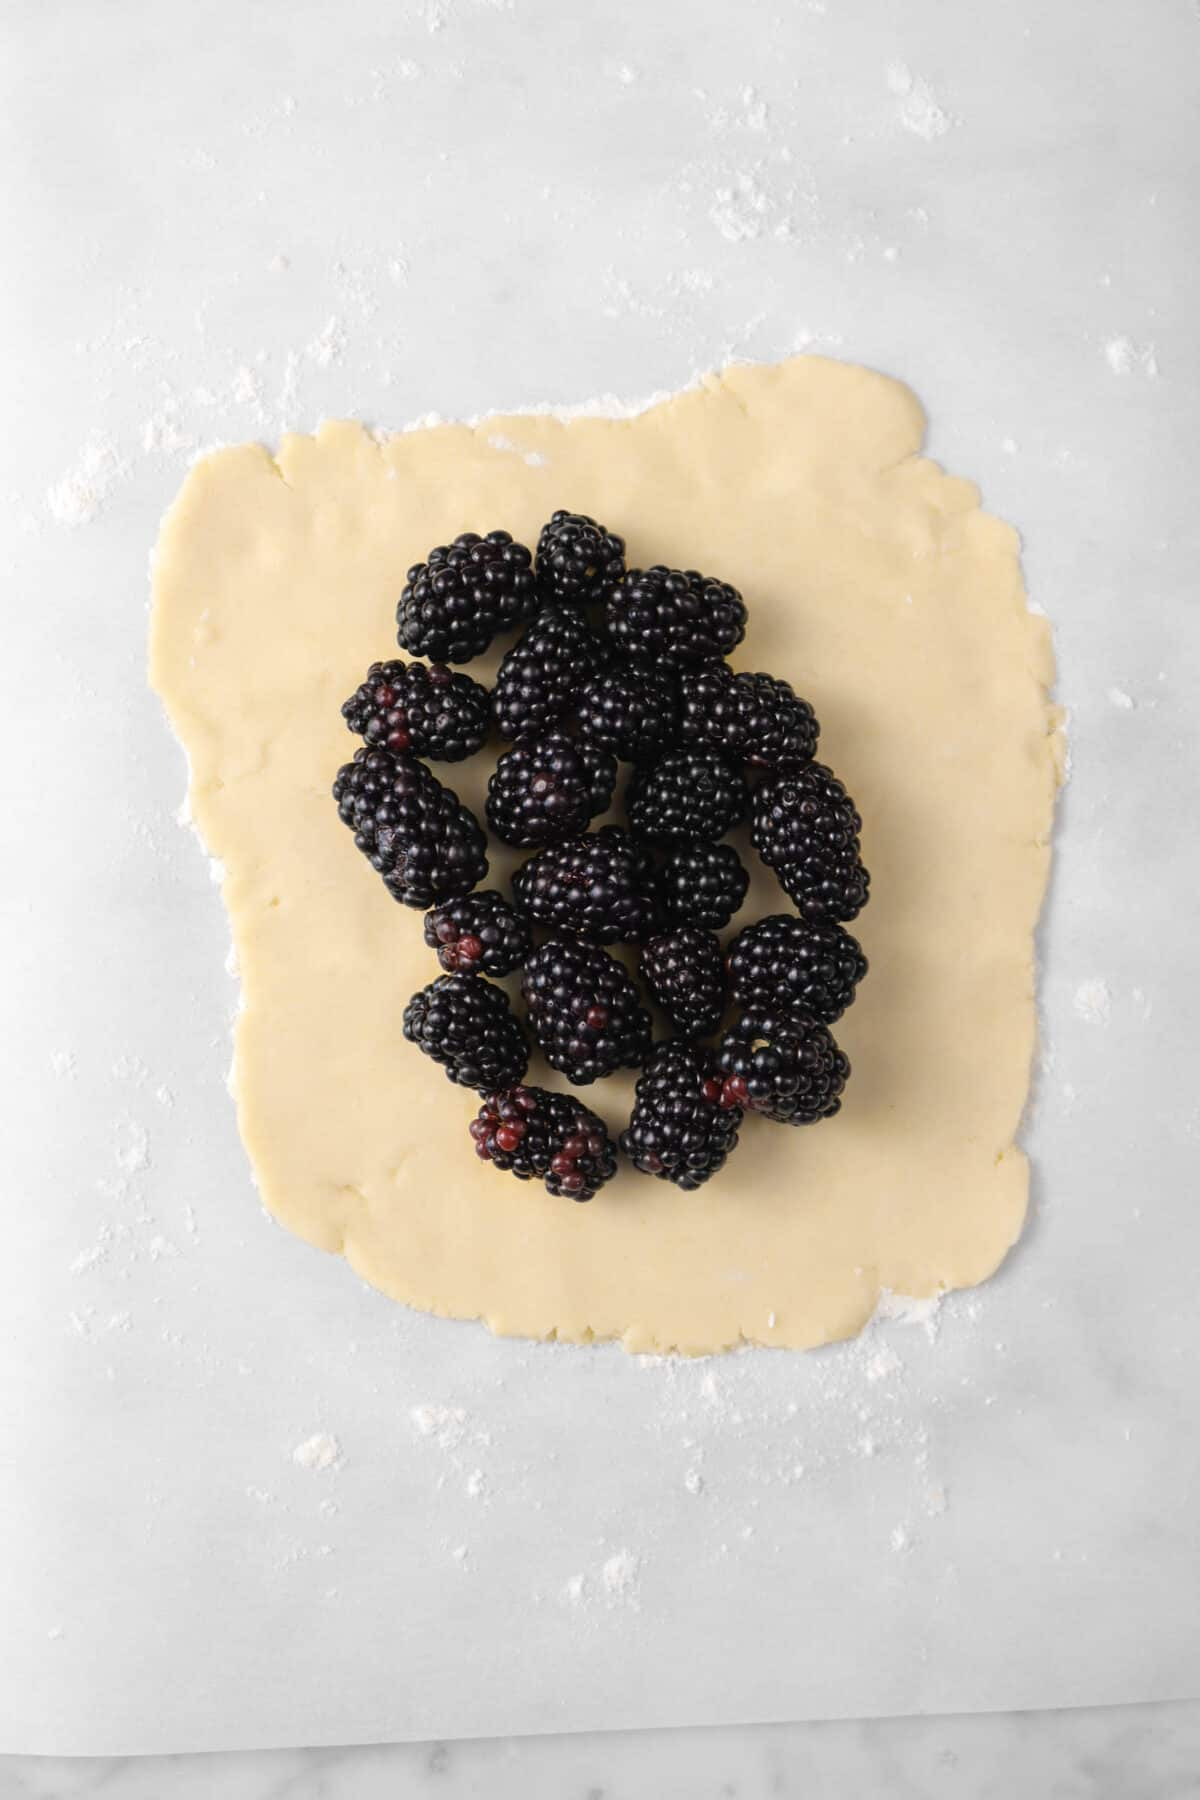 blackberries added onto rolled out pastry dough